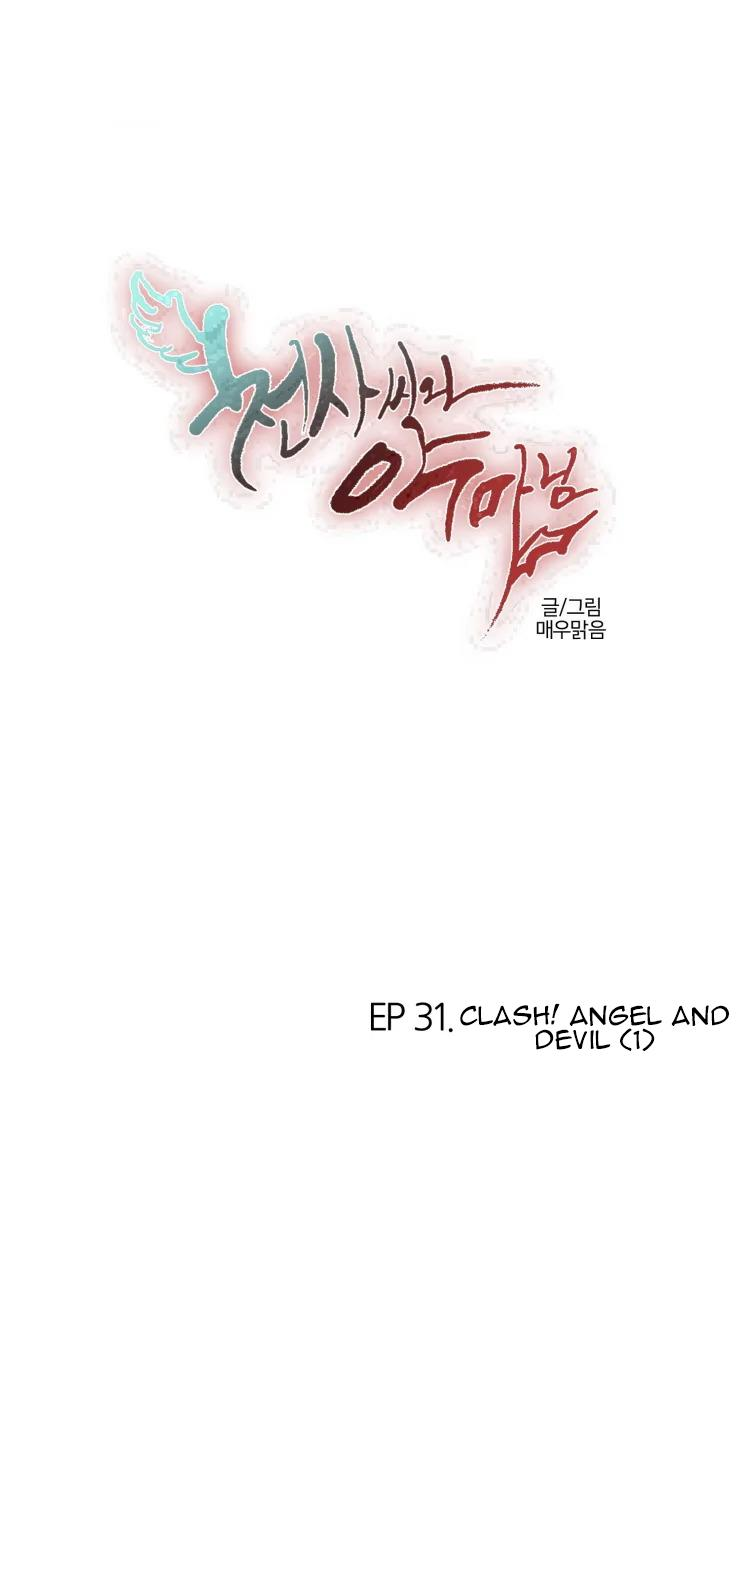 Miss Angel And Miss Devil Chapter 280: Ep 31 - Clash! Angel And Devil (1) page 2 - Mangakakalots.com